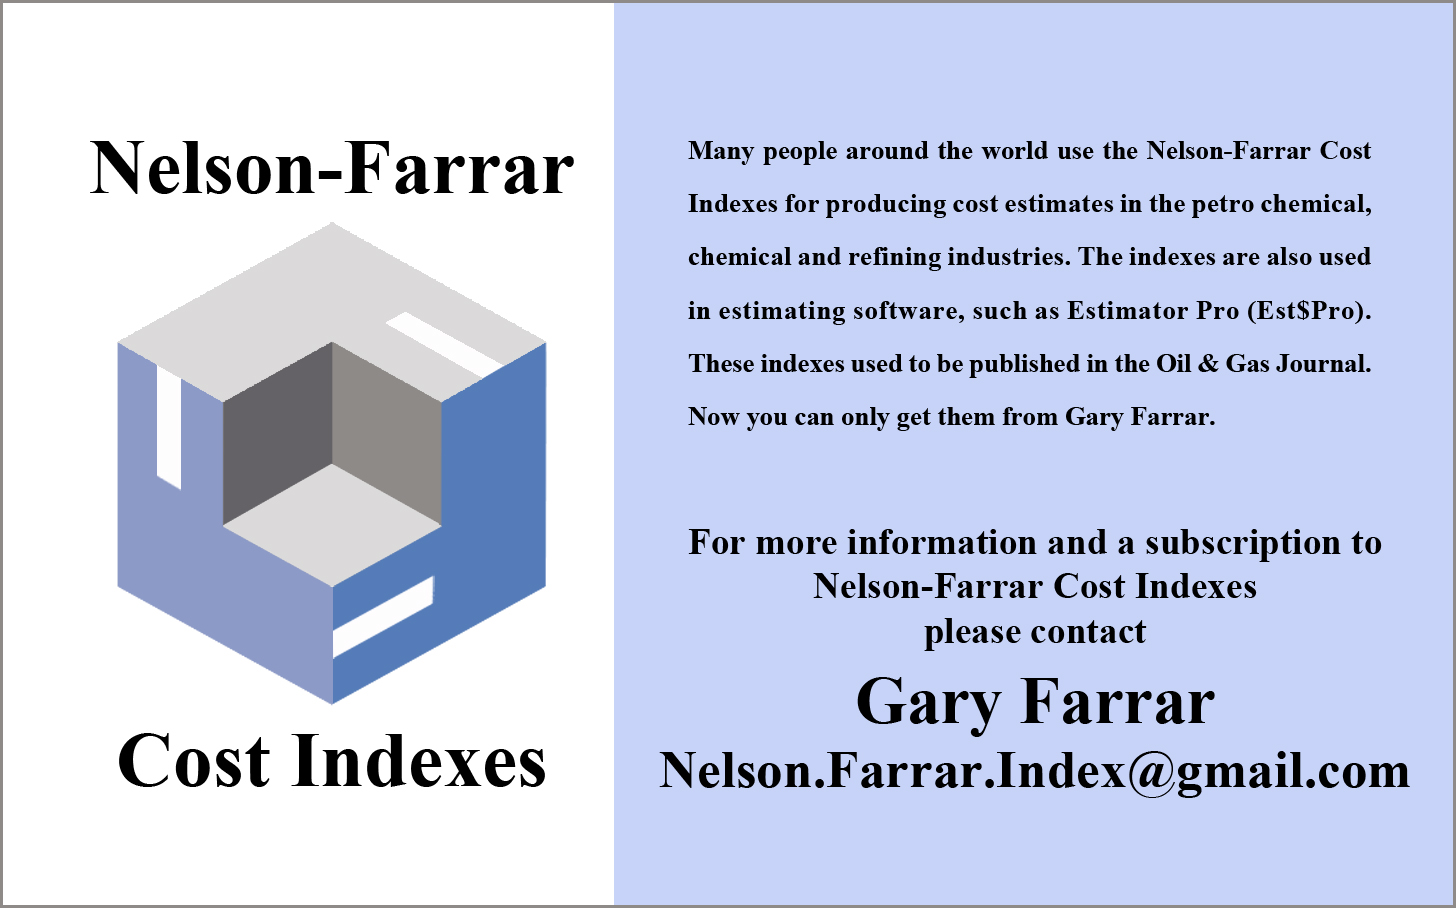 What is the Future of the Nelson-Farrar Cost Indexes?